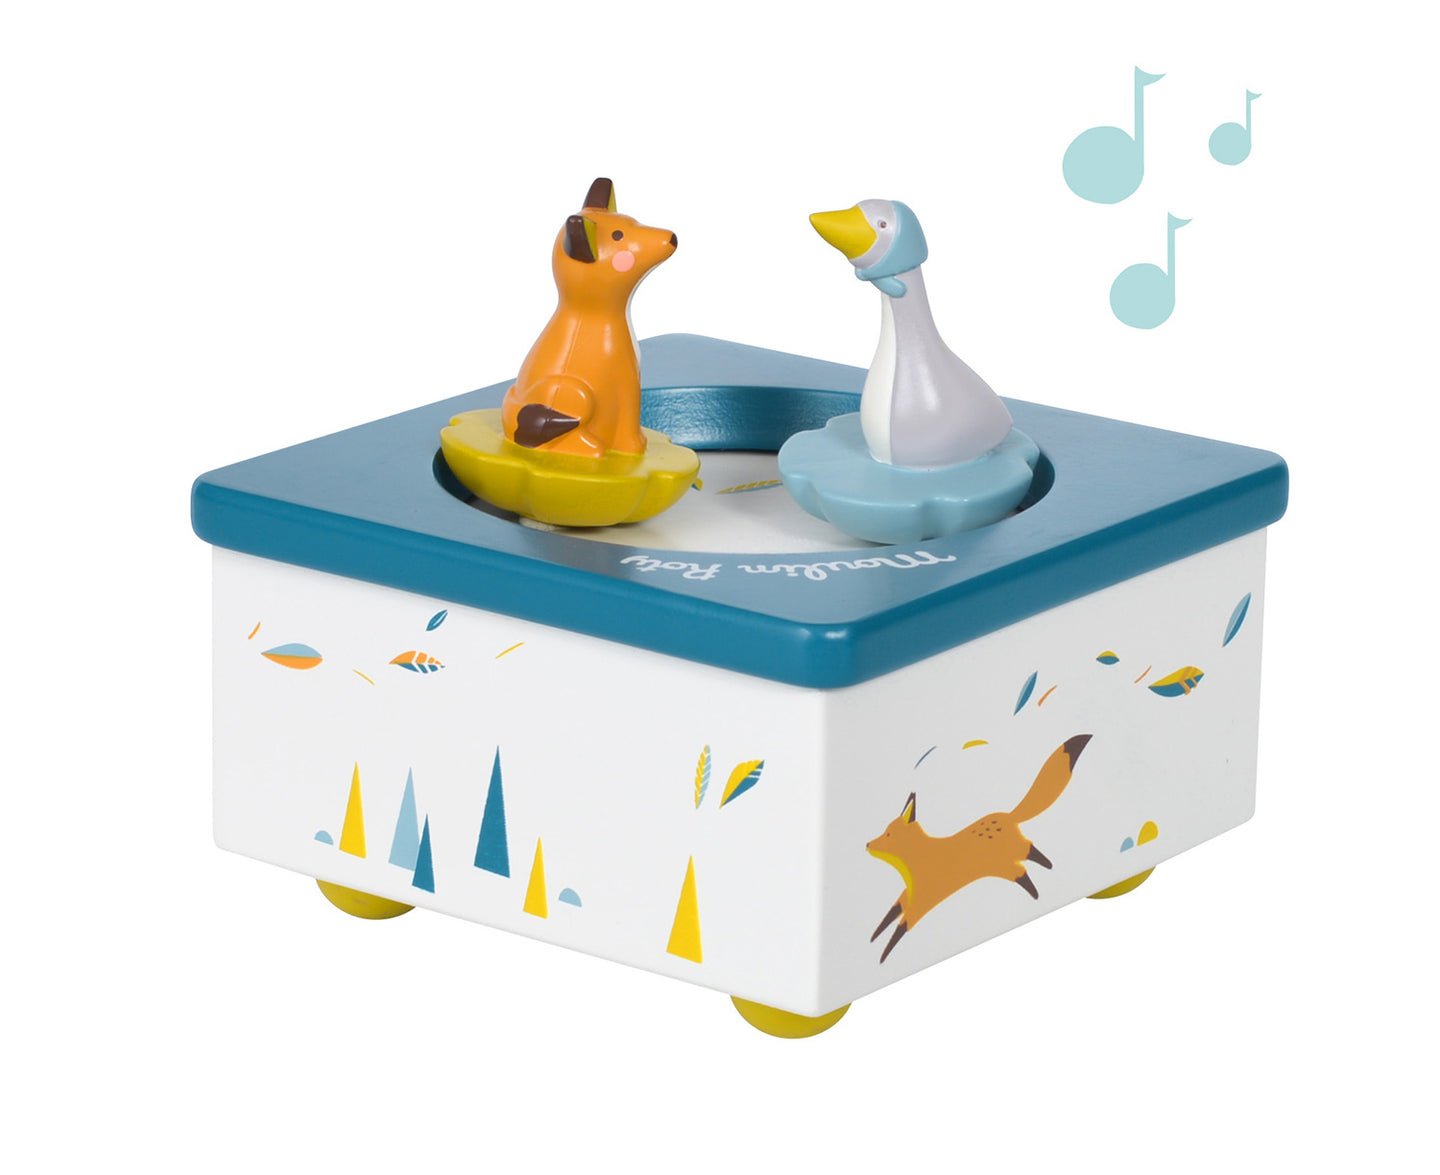 This musical box is beautifully illustrated with Chaussette the Fox, Olga the Goose, lucky feathers and pastel coloured mountains. It plays a sweet lullaby that is sure to put your little one to sleep, as they listen to the beautiful music and look at the fox and goose go around in circles. Good might little one!